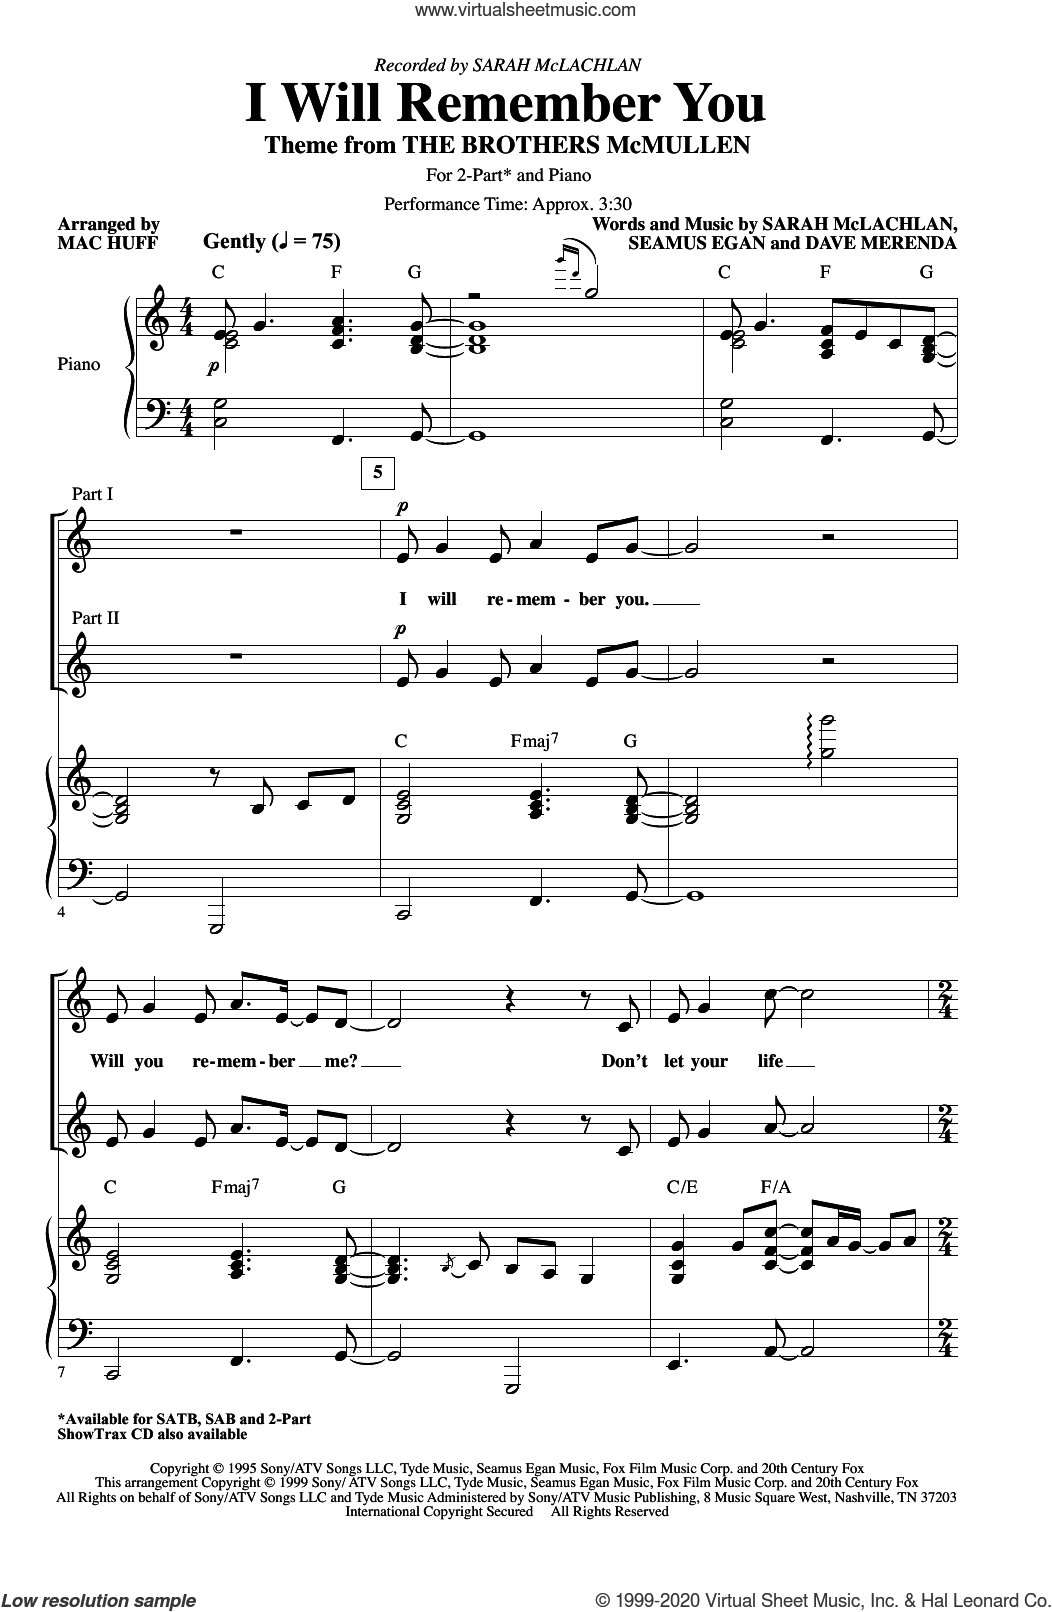 I Will Remember You (arr. Mac Huff) sheet music for choir (2-Part) by Sarah McLachlan, Mac Huff, Dave Merenda and Seamus Egan, intermediate duet